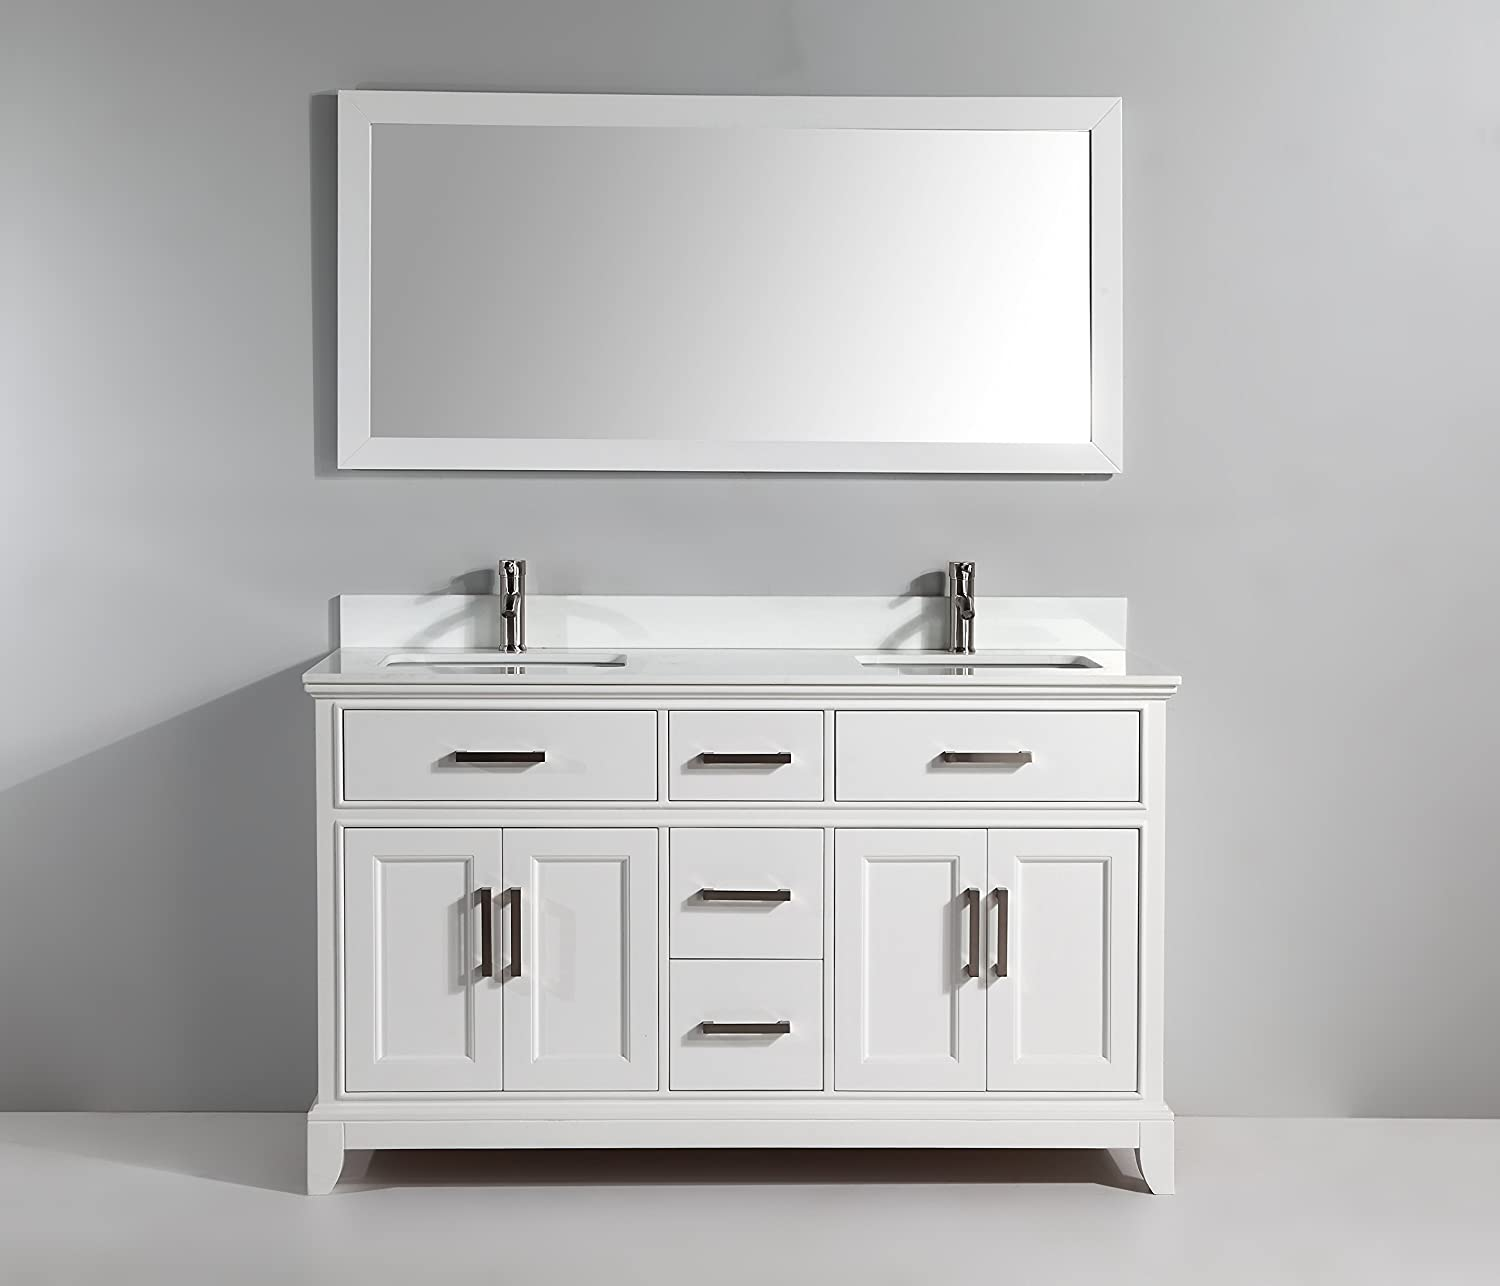 High Quality Bathroom Vanity: High-quality Vanity Art 60 Inch Bathroom Vanity Set With